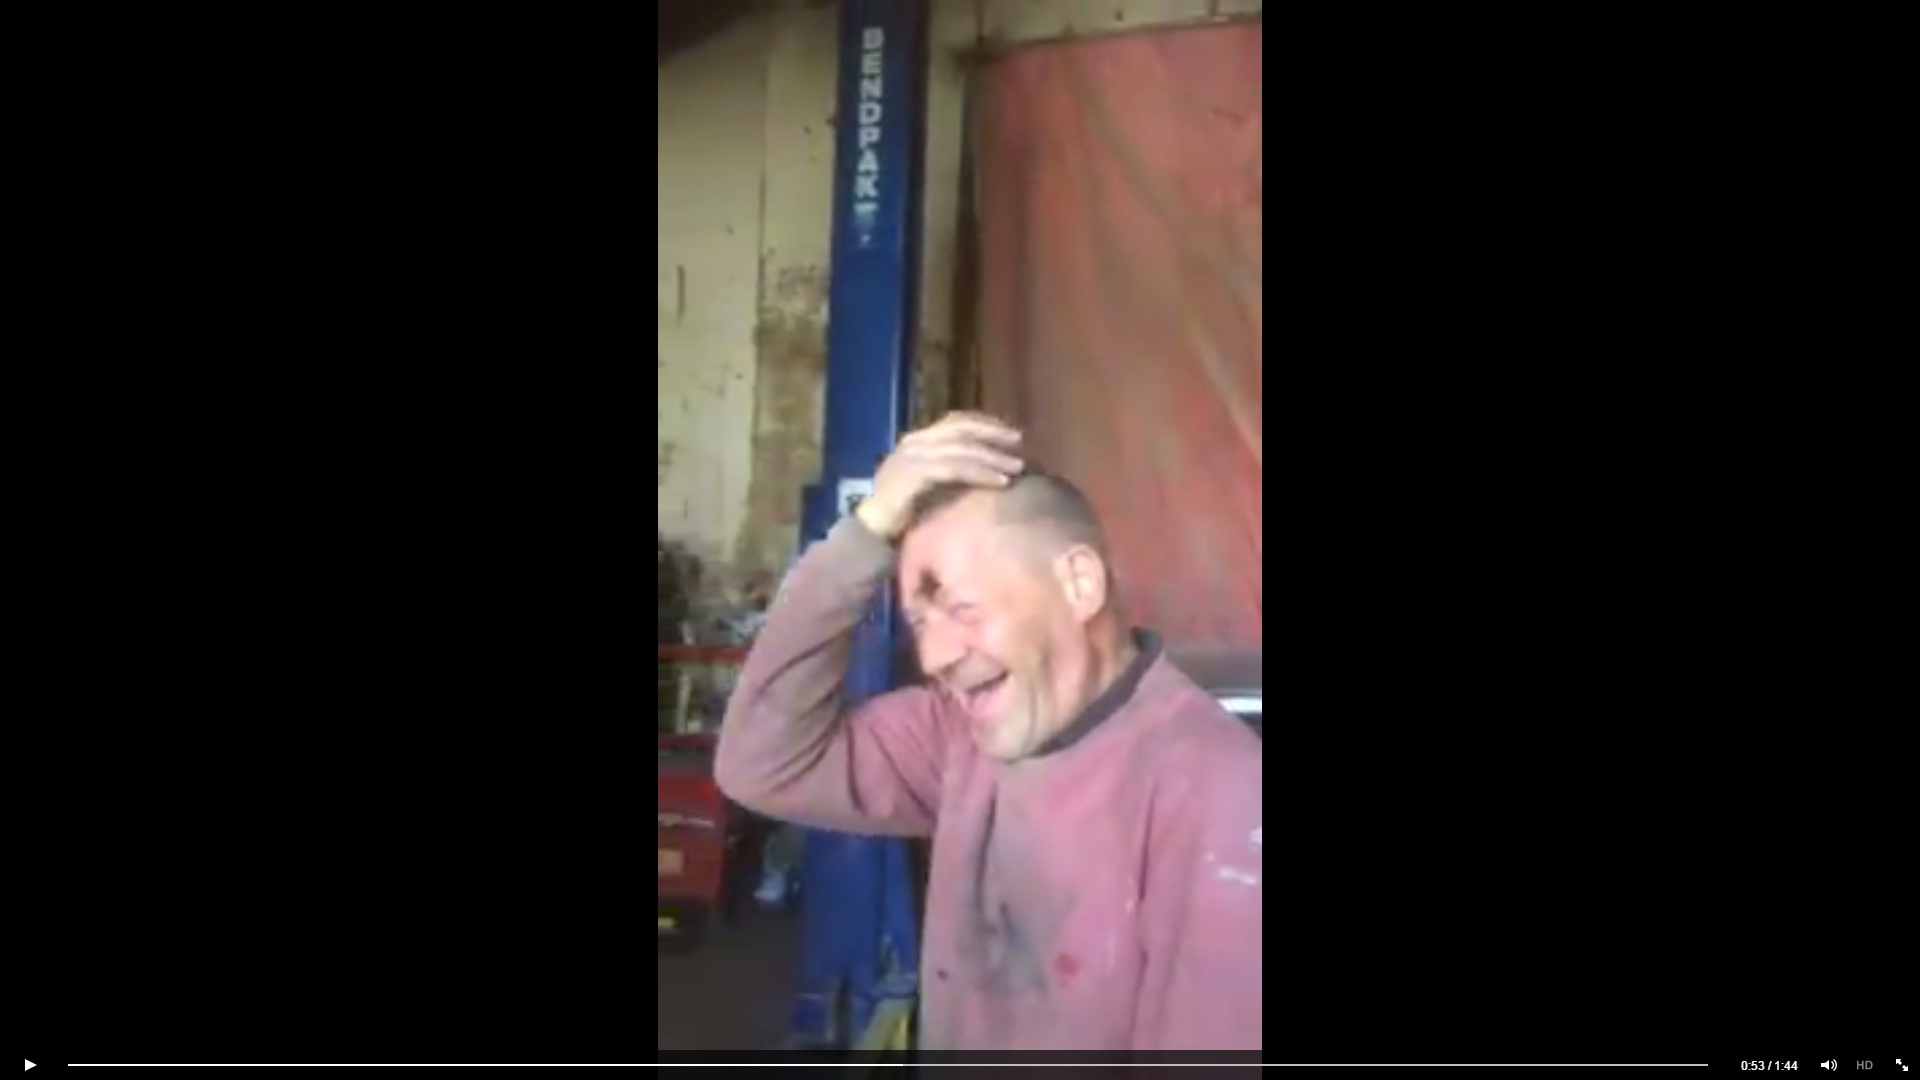 Man balances egg on his head for long time – doesn't realise it's a prank